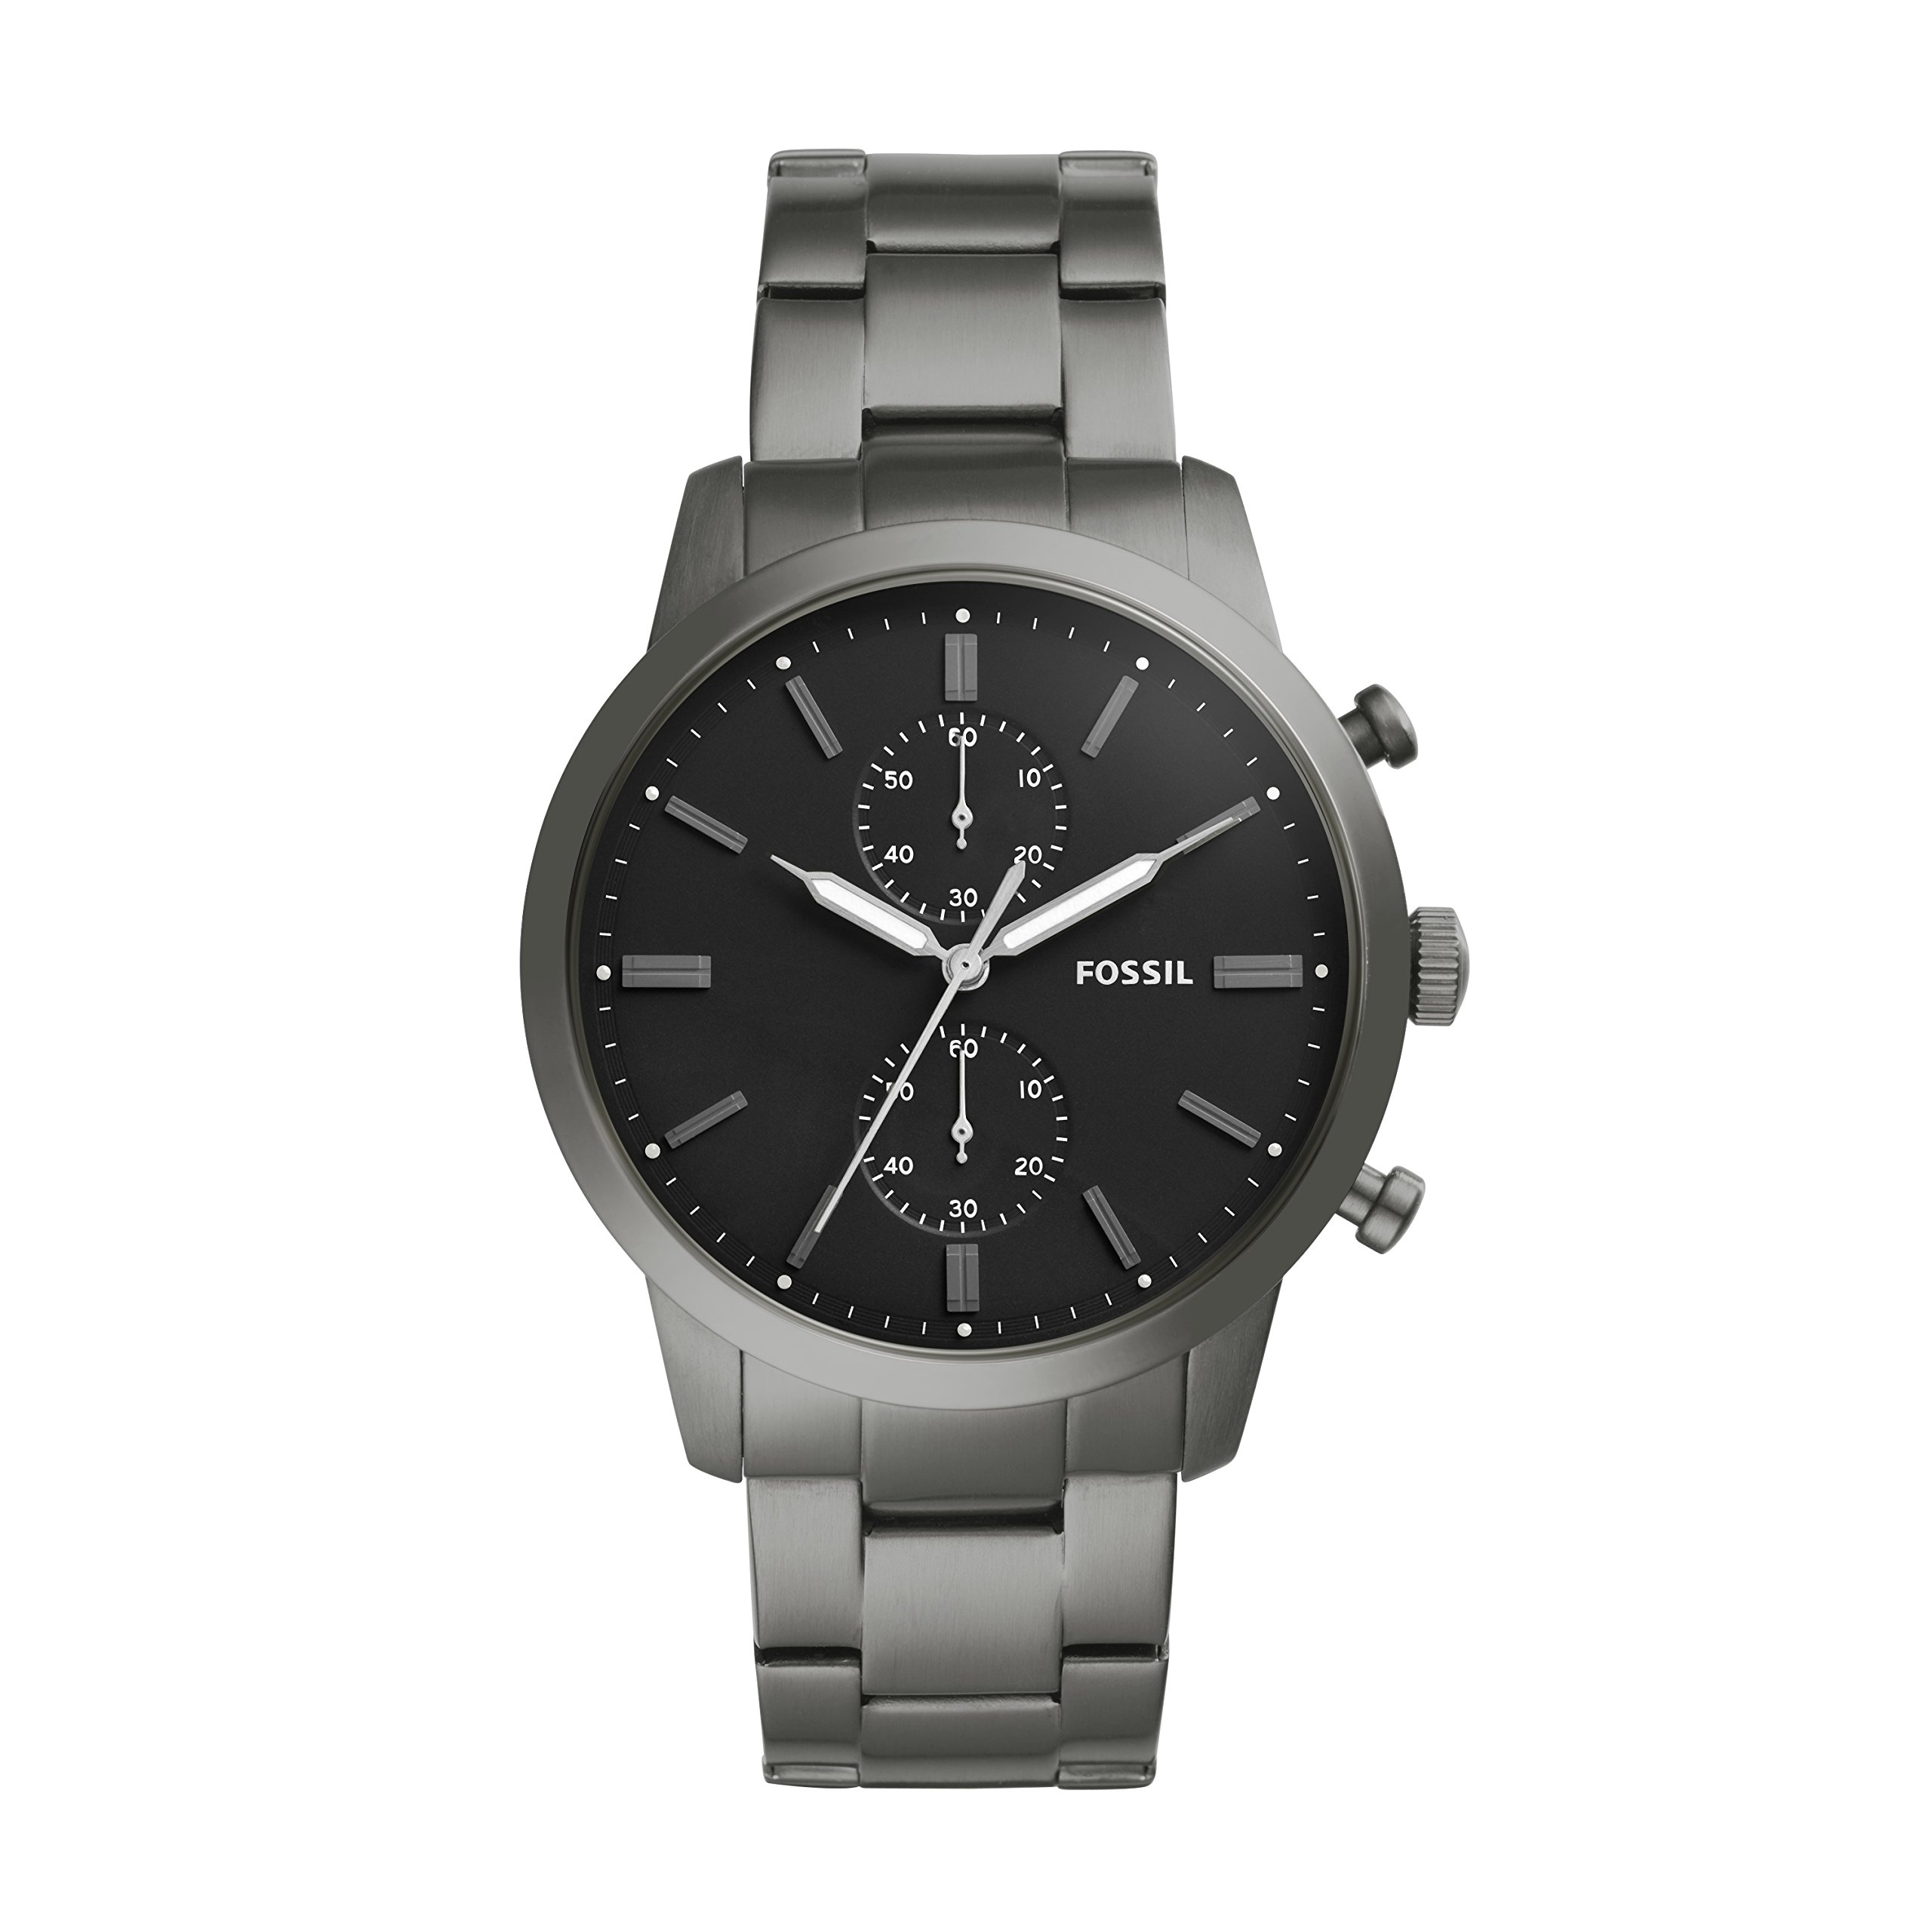 Fossil Watch TOWNSMAN 44 MM FS5349 by Fossil